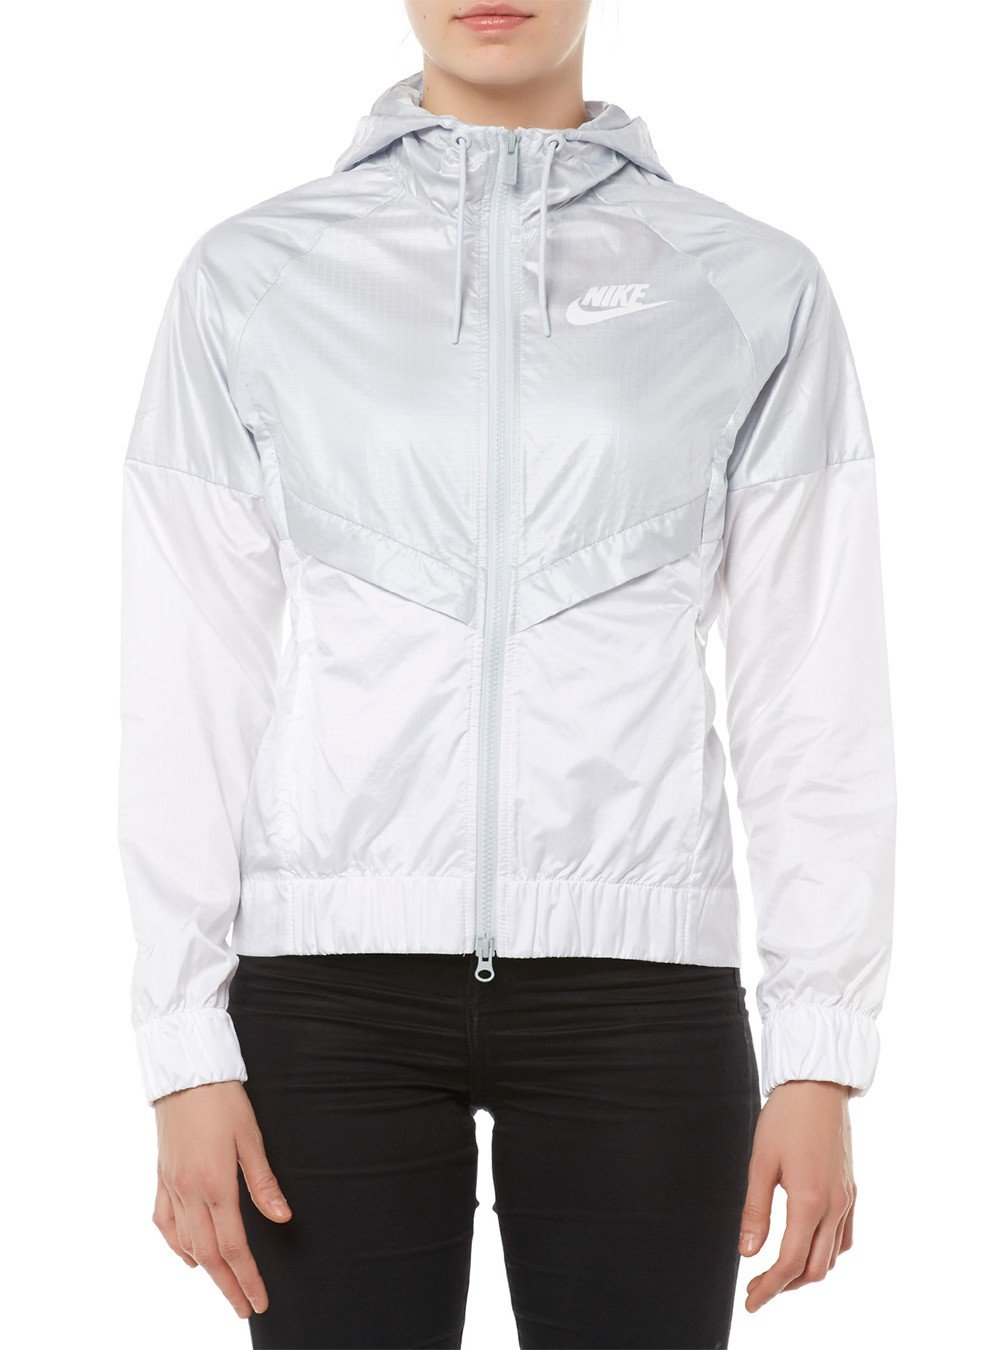 Nike Womens Windrunner Track Jacket Pure Platinum/White 804947-011 Size Large